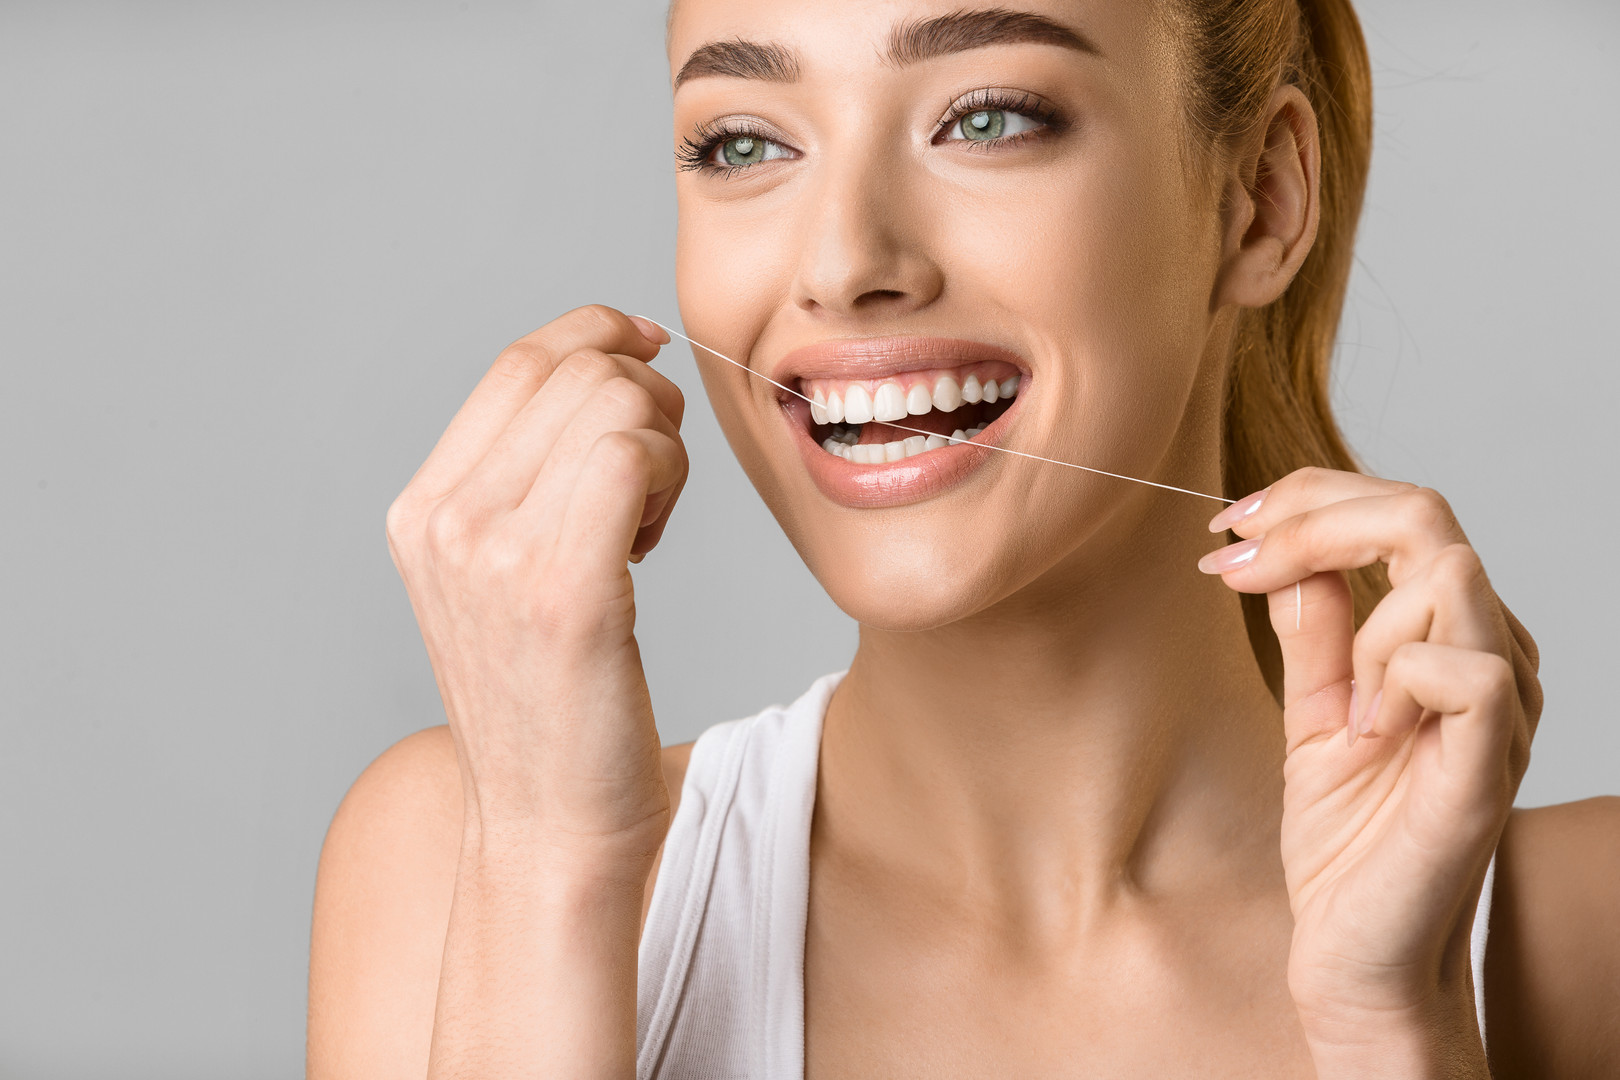 tooth-care-young-woman-using-dental-flos